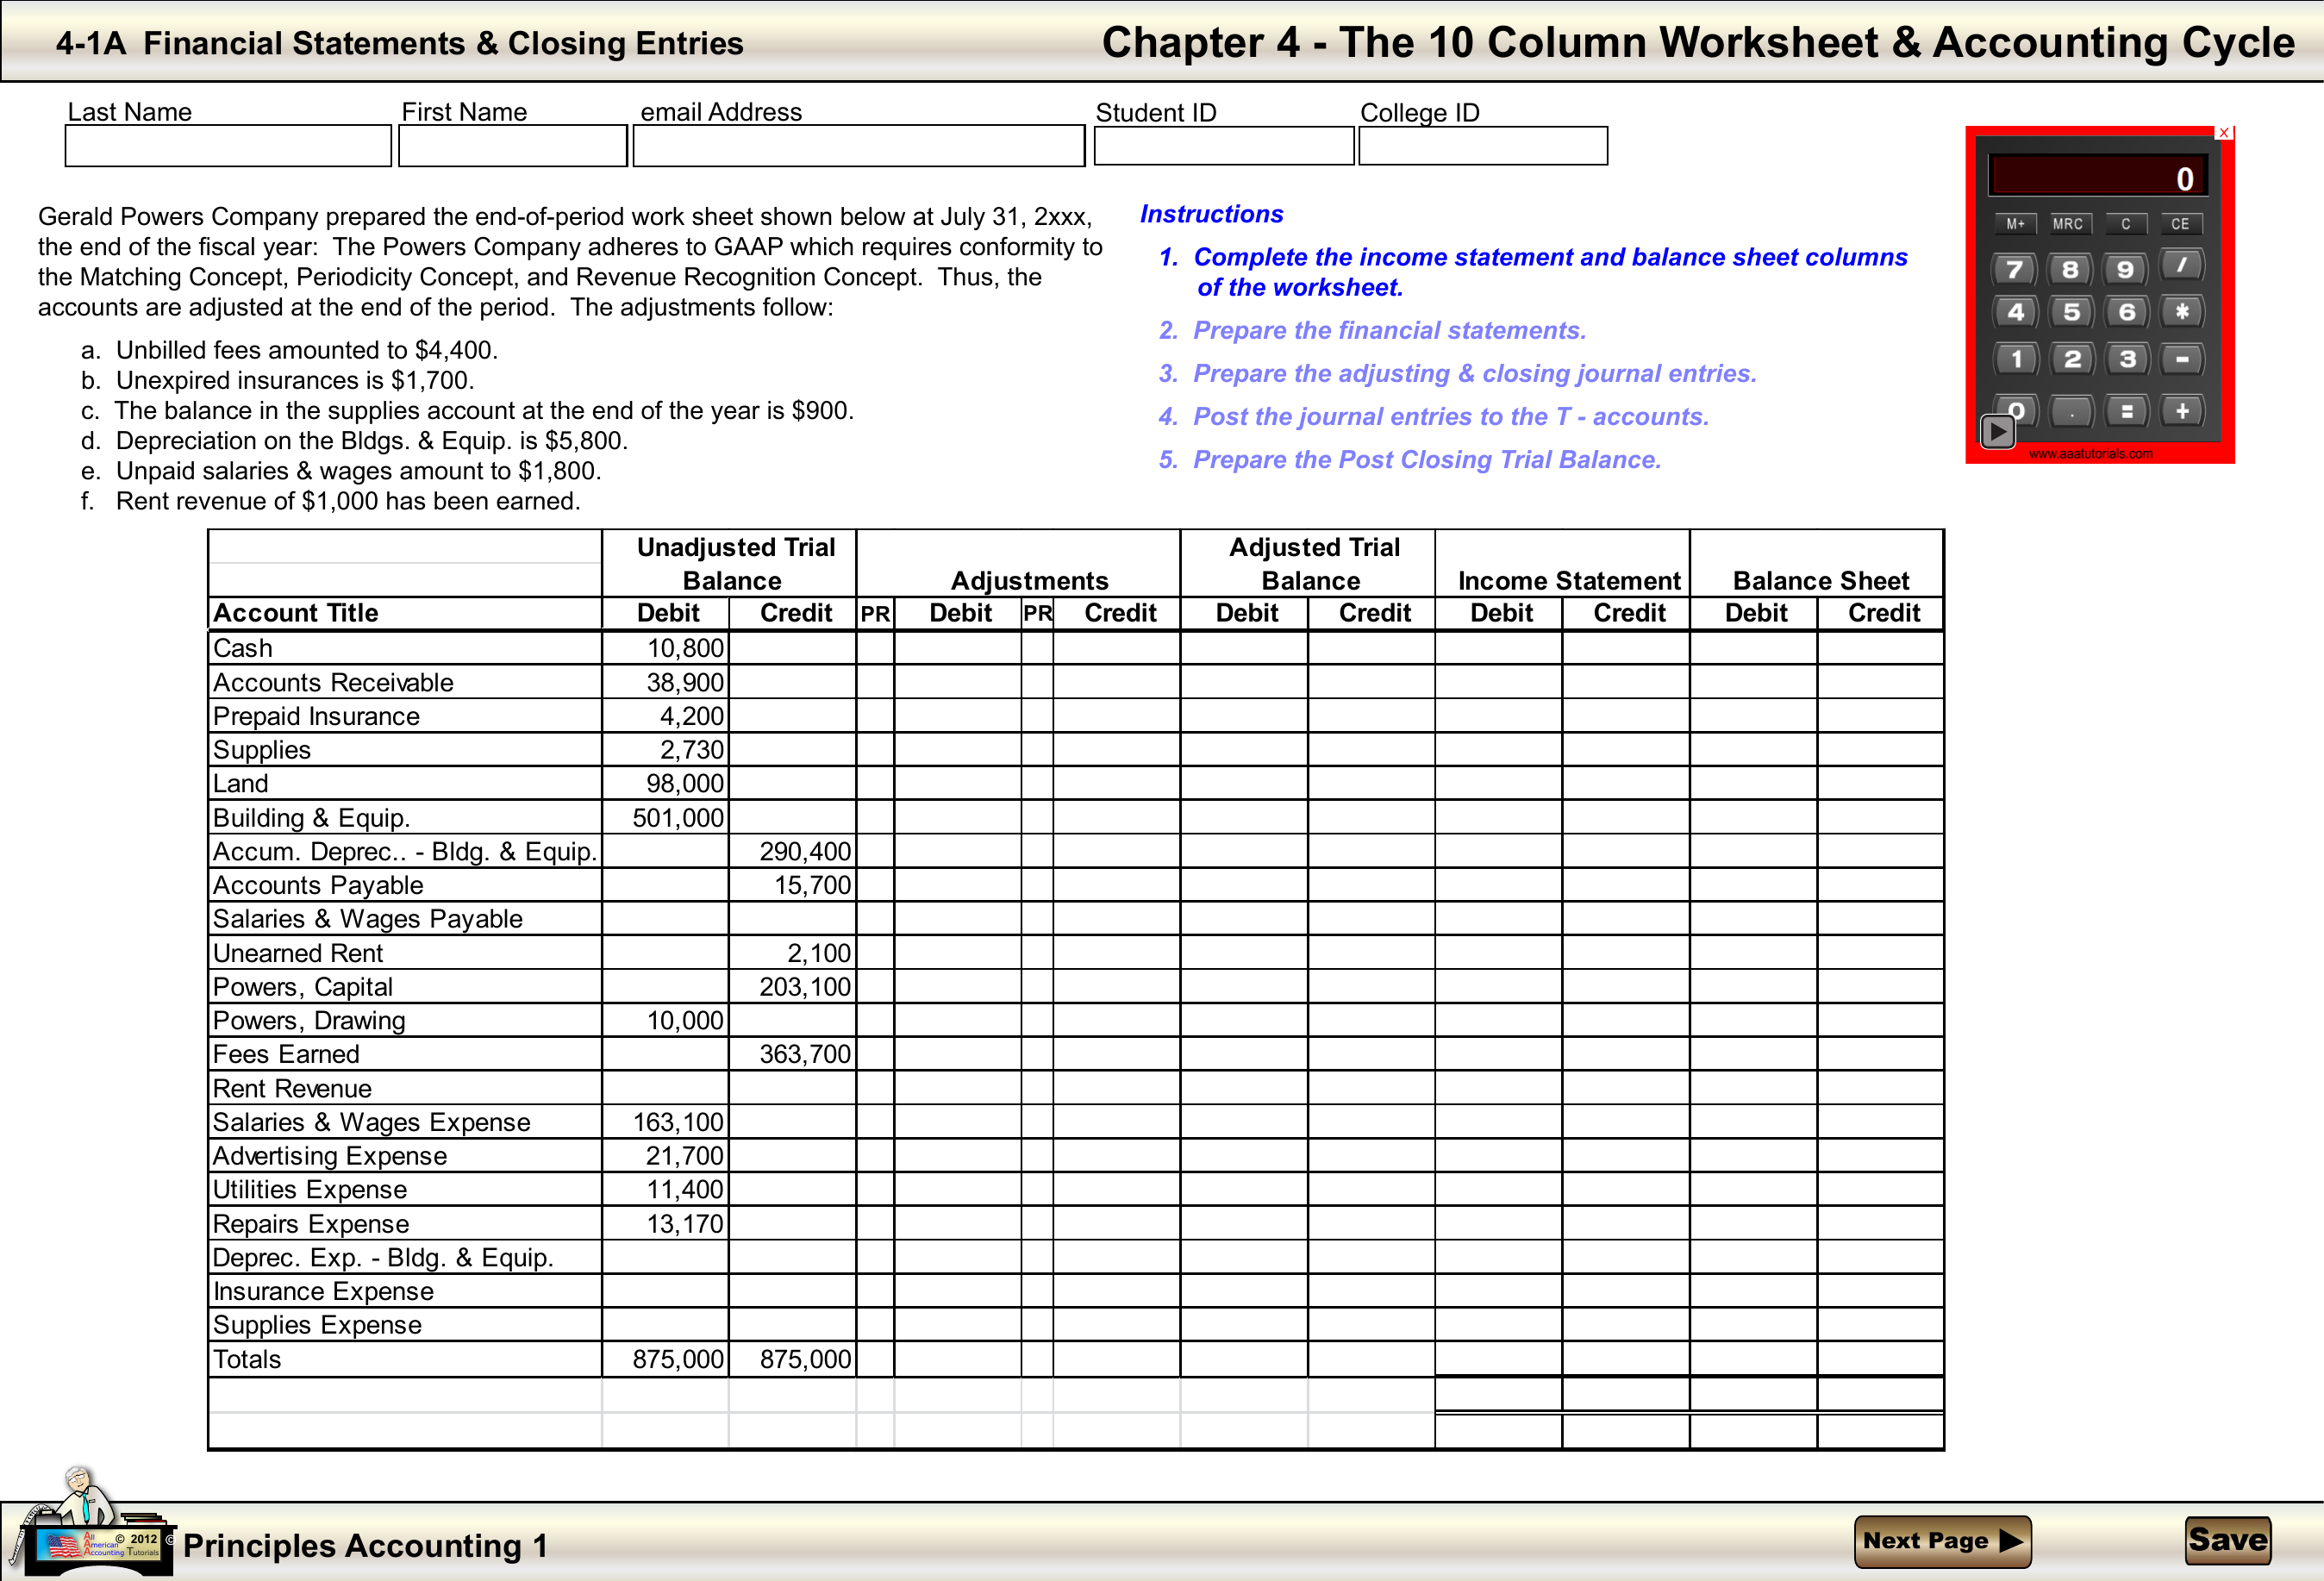 Chapter 4 - The 10 Column Worksheet & Accounting Cycle